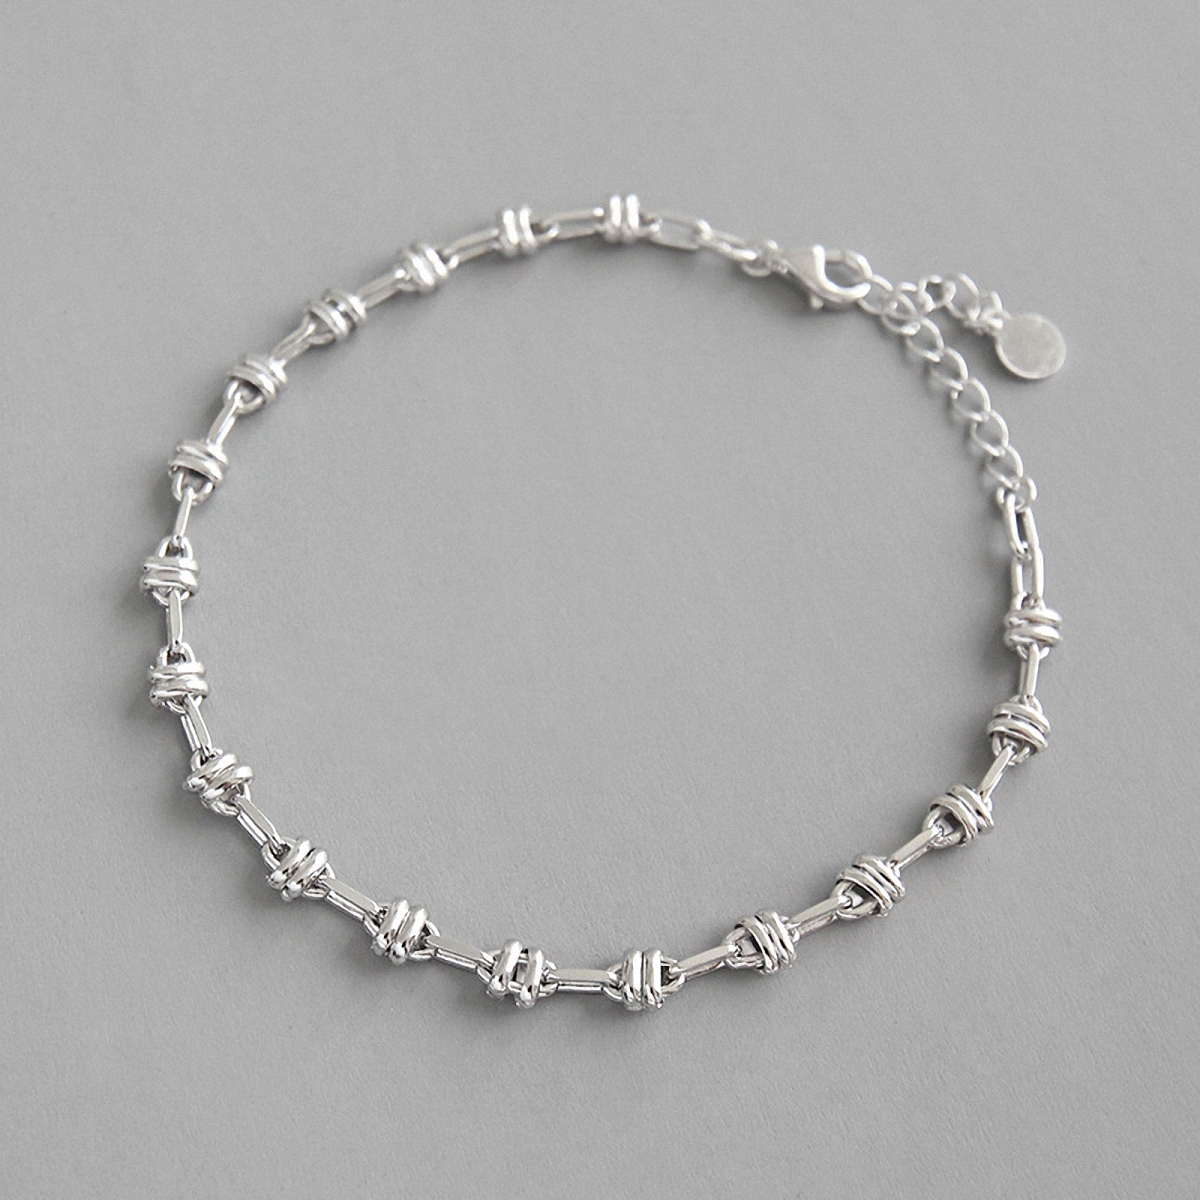 Bracelet Sterling Silver 925 Silver Turkish Handmade Perfect Gift for Her